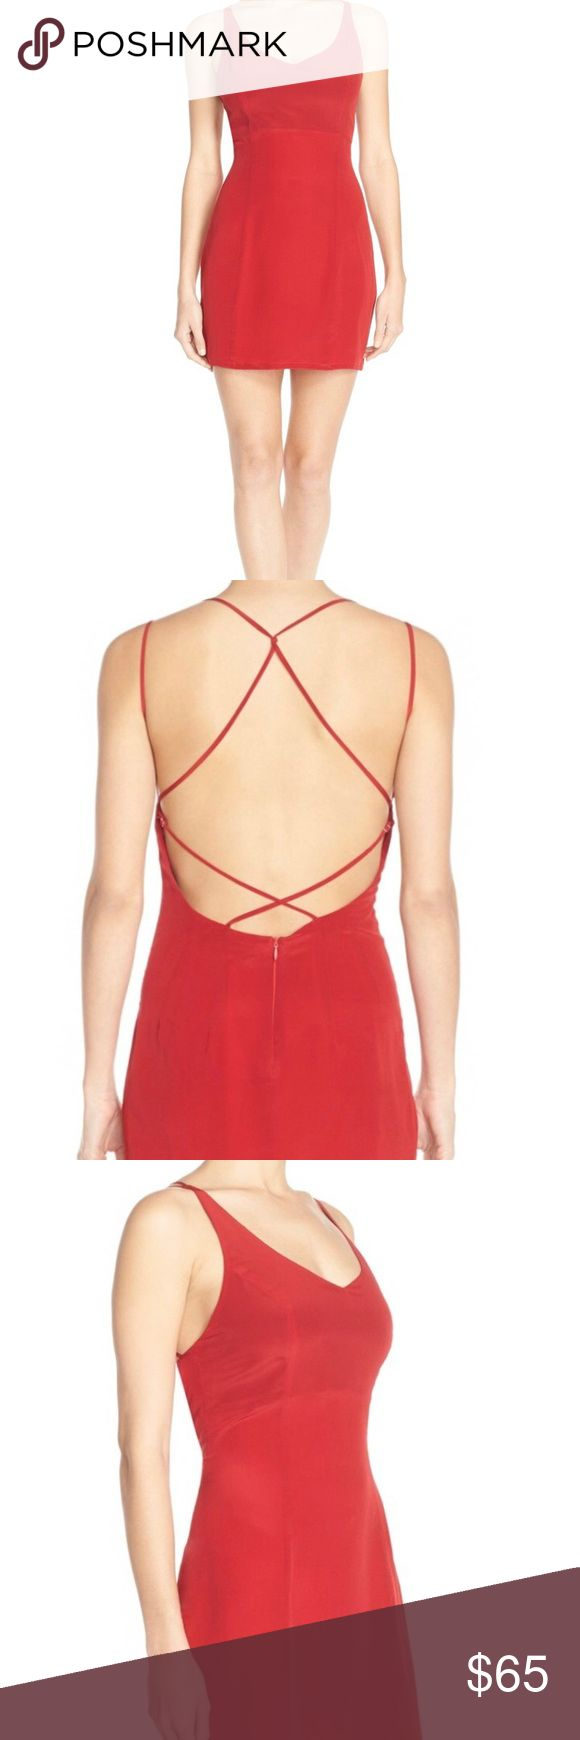 "Charlie Jade Red Silk Dress A festive red hue amplifies the sultry charm of this cocktail dress cut from luxurious silk and designed with an alluring open back with crisscrossed straps. - Sleeveless - Back zip closure - Strappy back design - Lightweight, non-stretch silk - Fully lined - Approx. 35.5"" length - Imported Fiber Content 100% silk  Dry clean charlie jade Dresses"